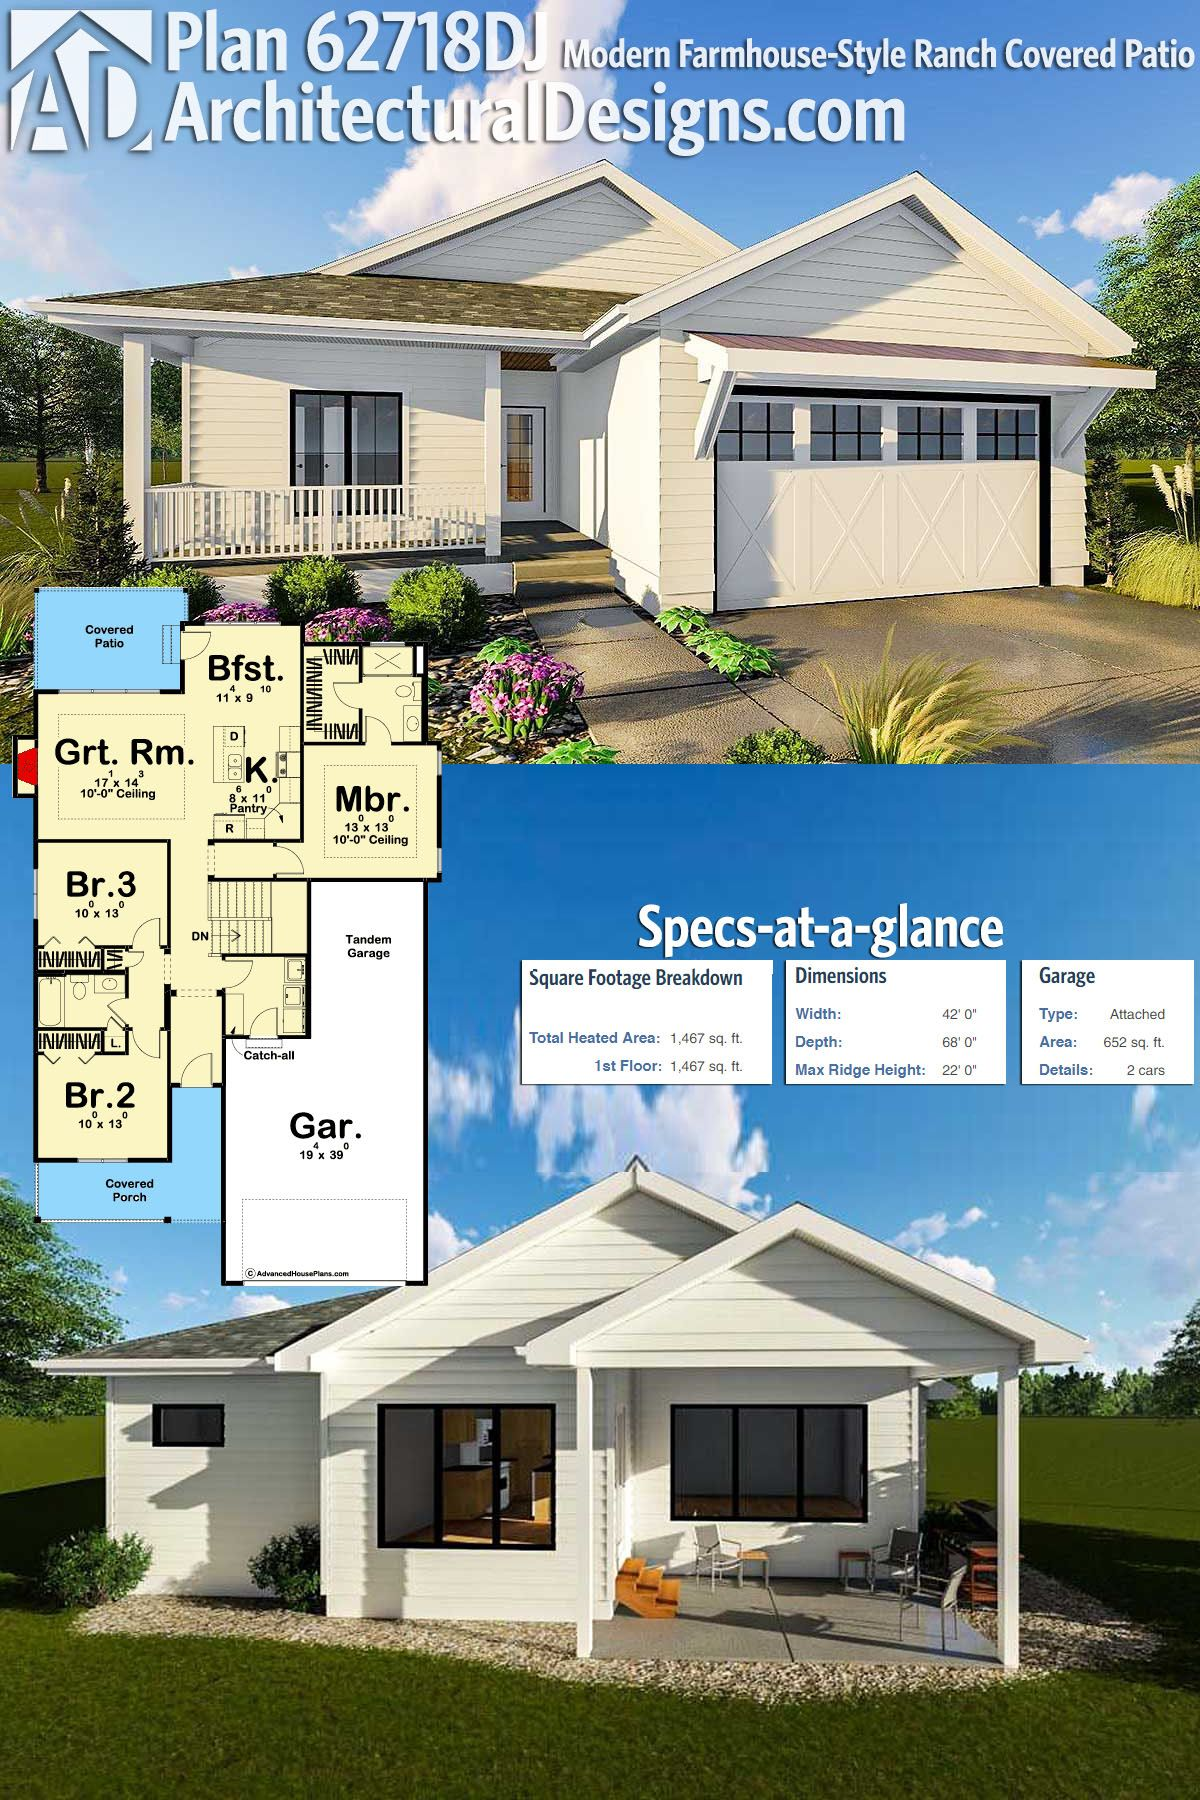 Architectural Designs House Plan 62718DJ is a